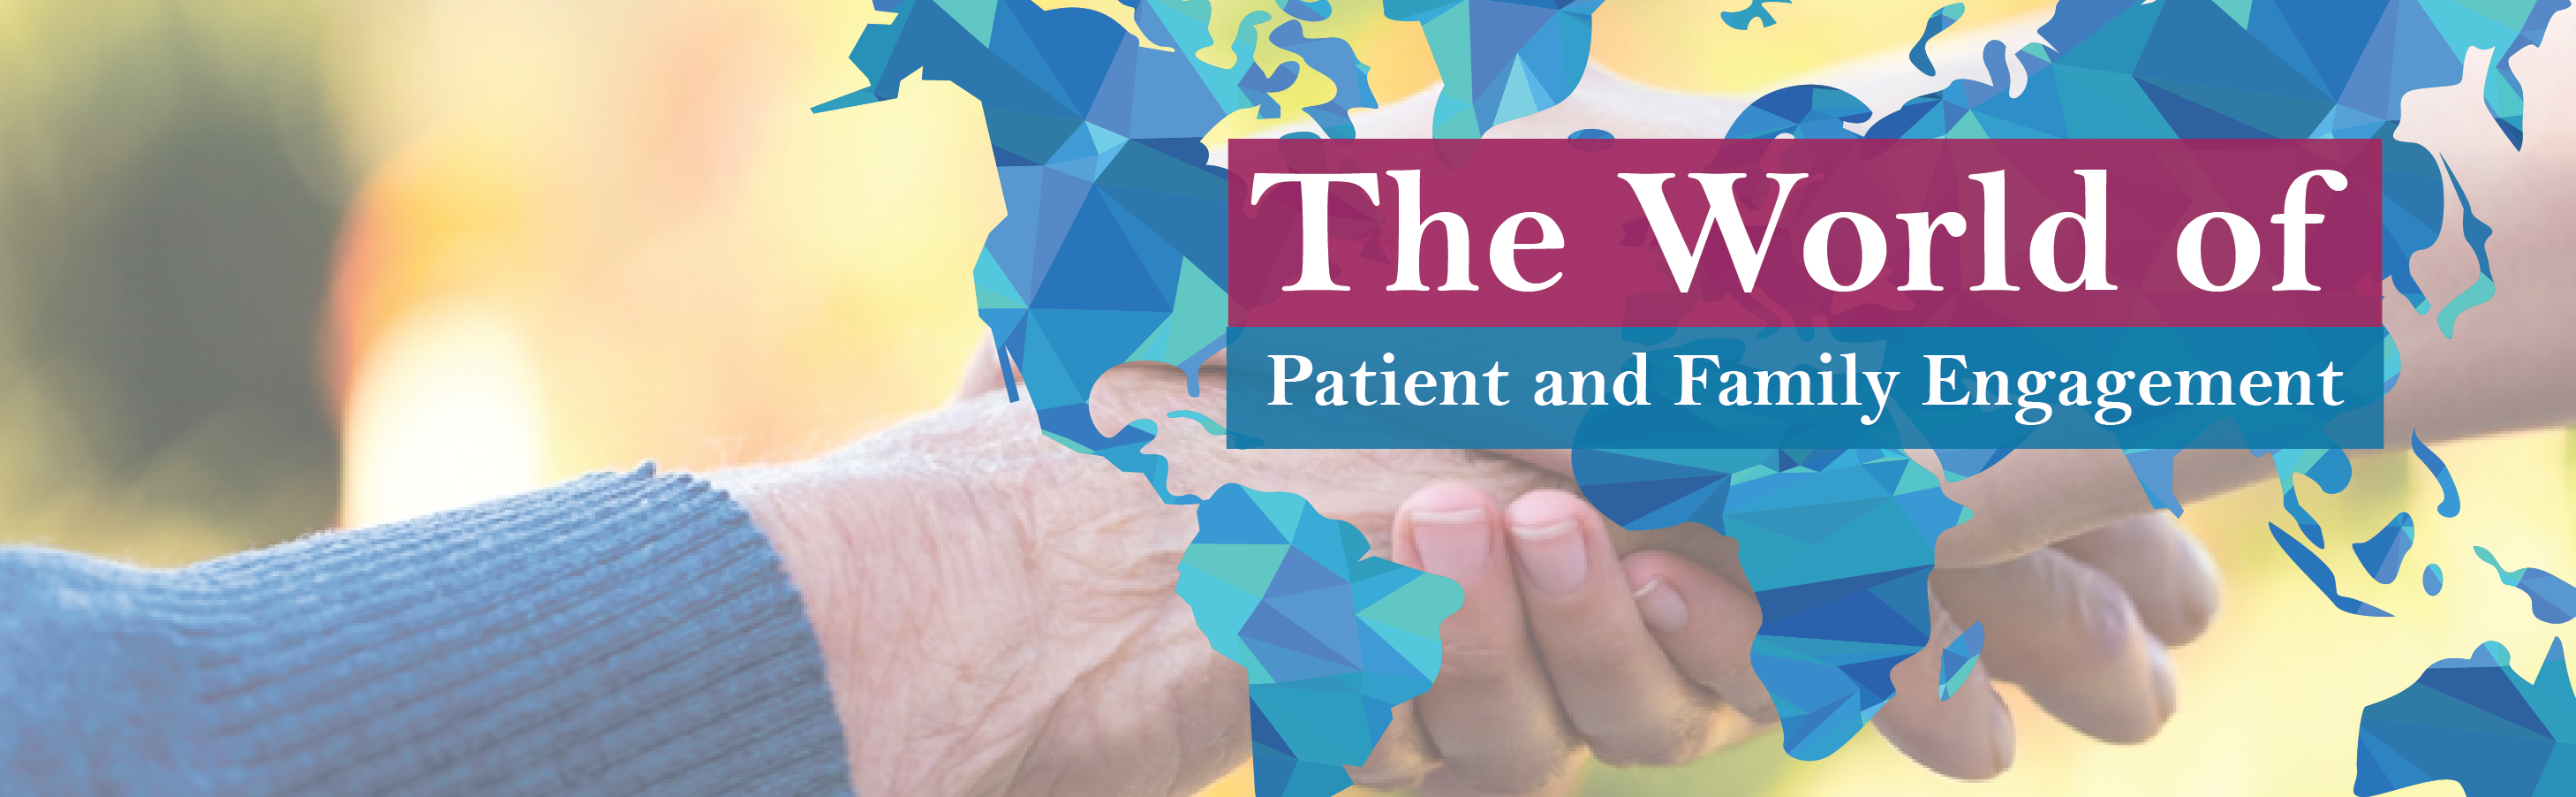 Patient-Centered Care Month